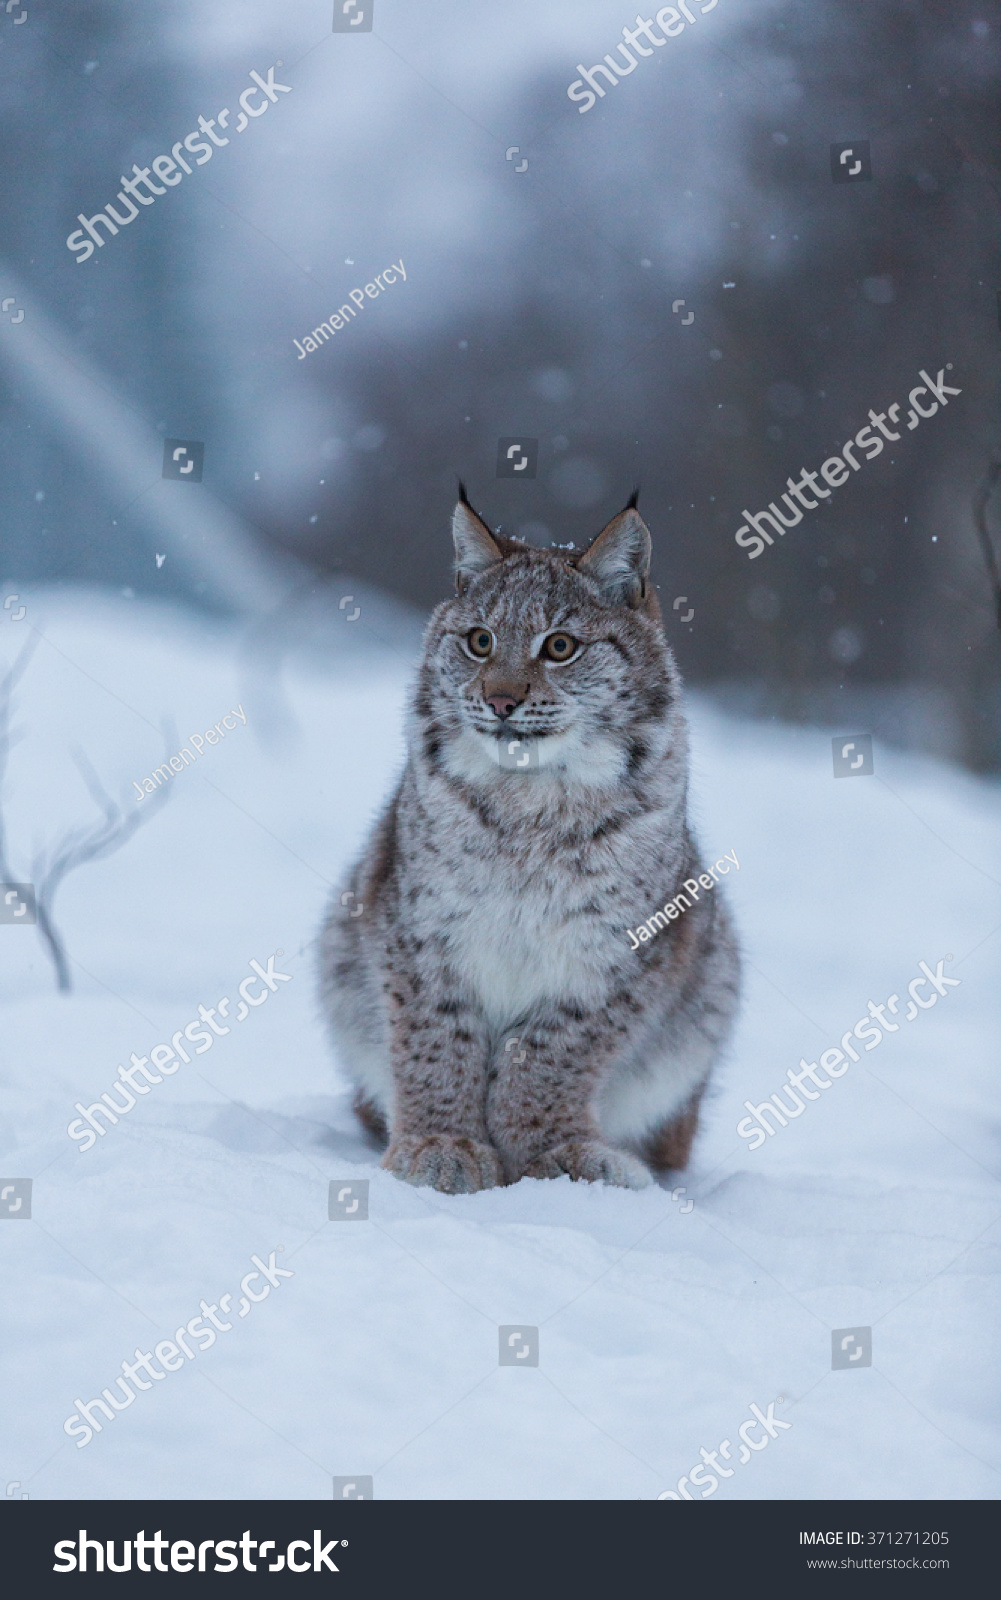 Snow Cat - Cats & Animals Background Wallpapers on Desktop ... |Winter Scenes With Cats